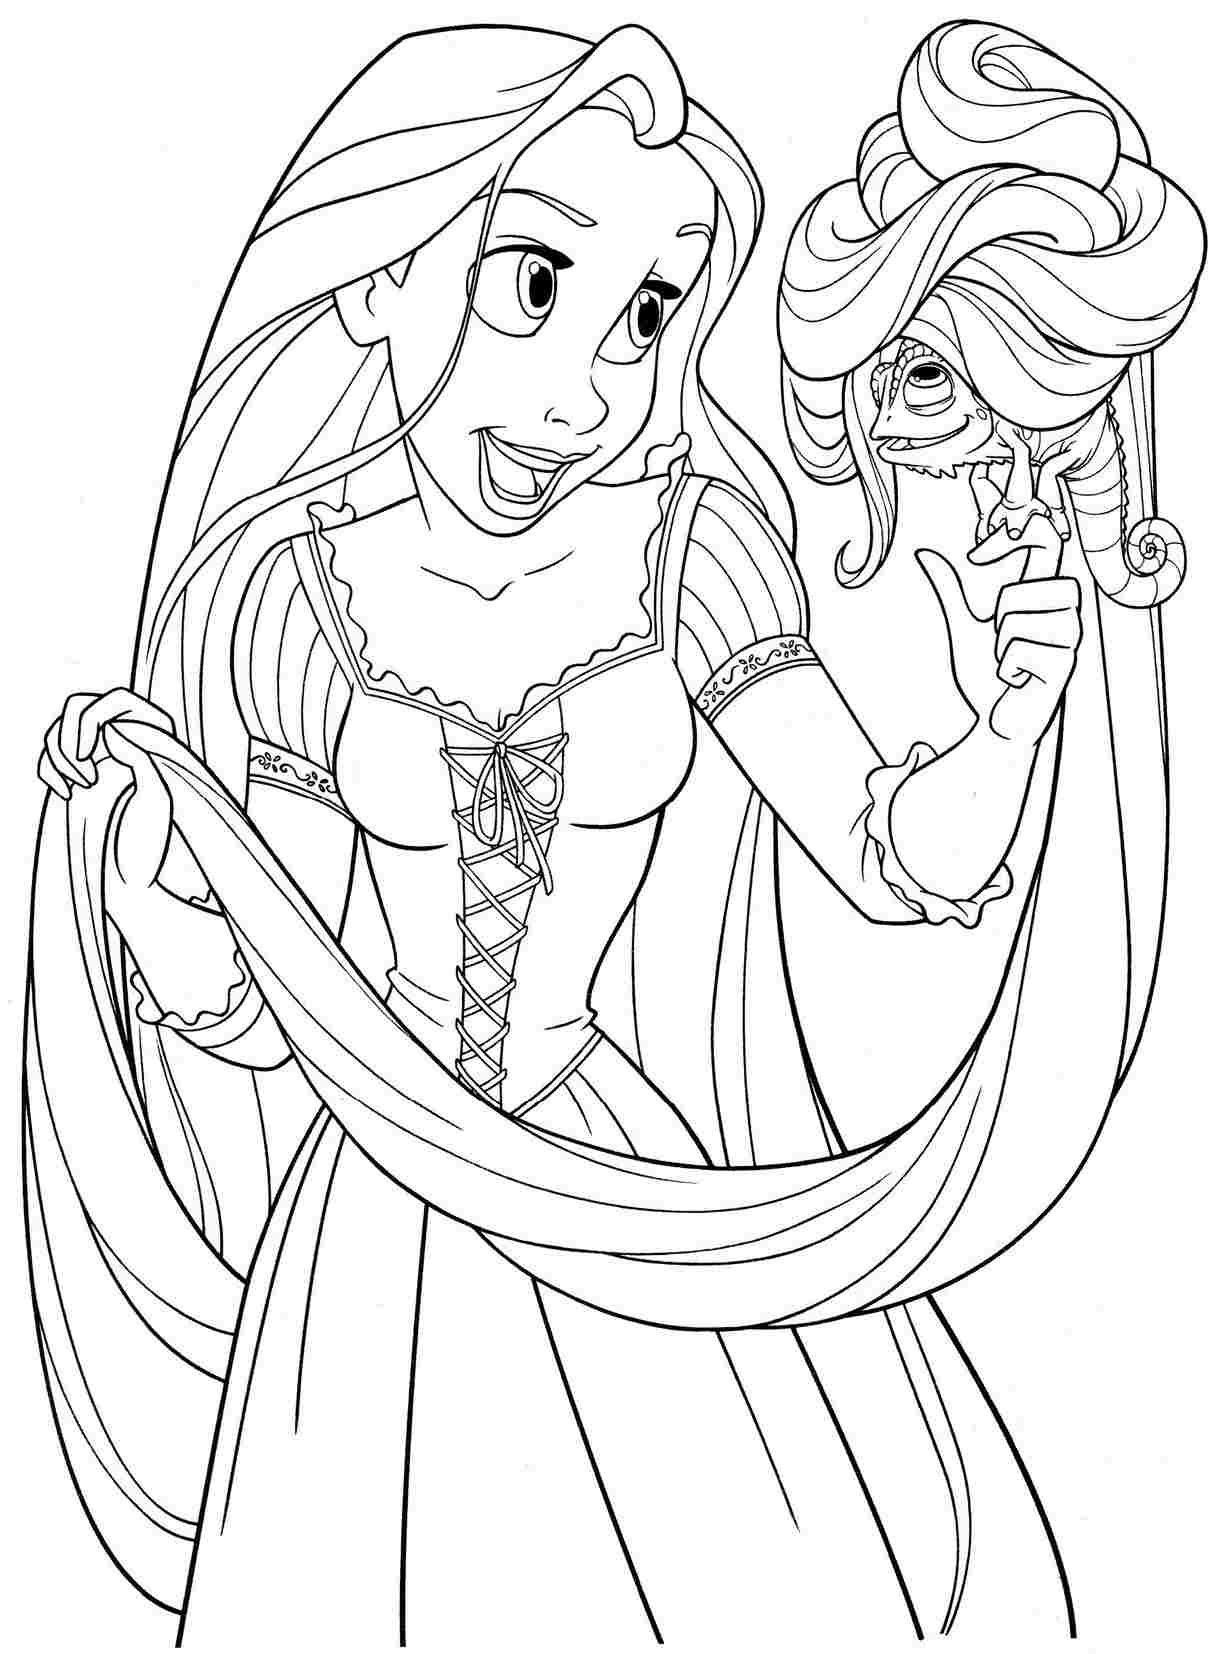 disney rapunzel pictures to color baby rapunzel drawing at getdrawings free download color rapunzel to disney pictures